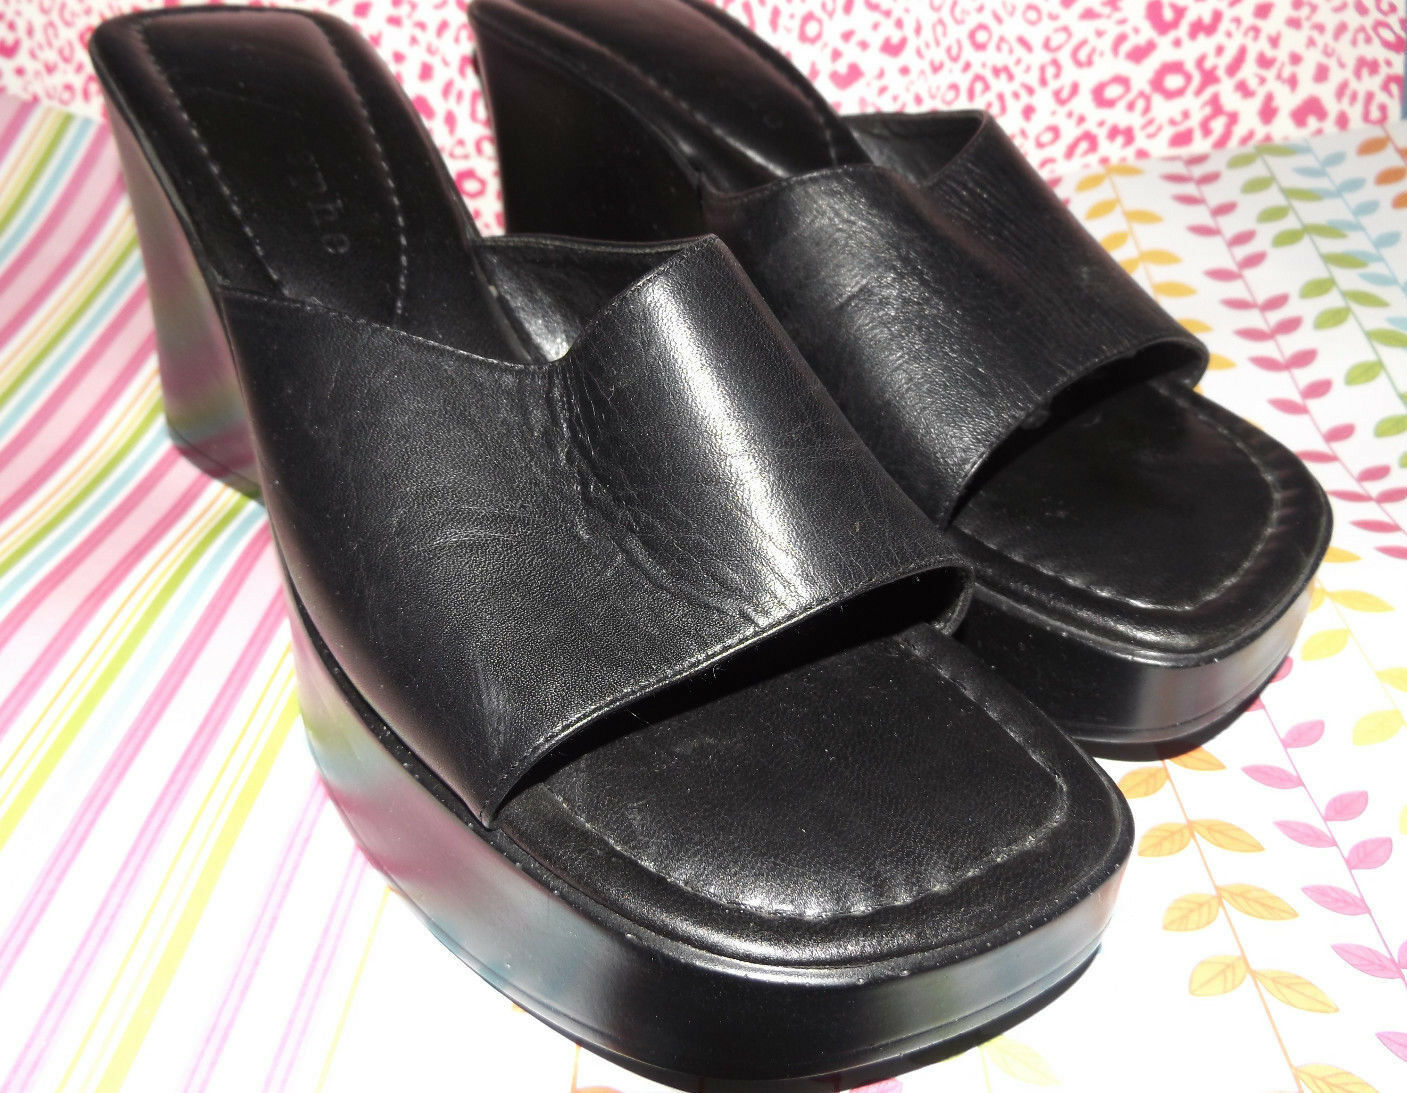 APOSTROPHE  Ladies Black 8M Shoes  / Size 8M Black 1e4728